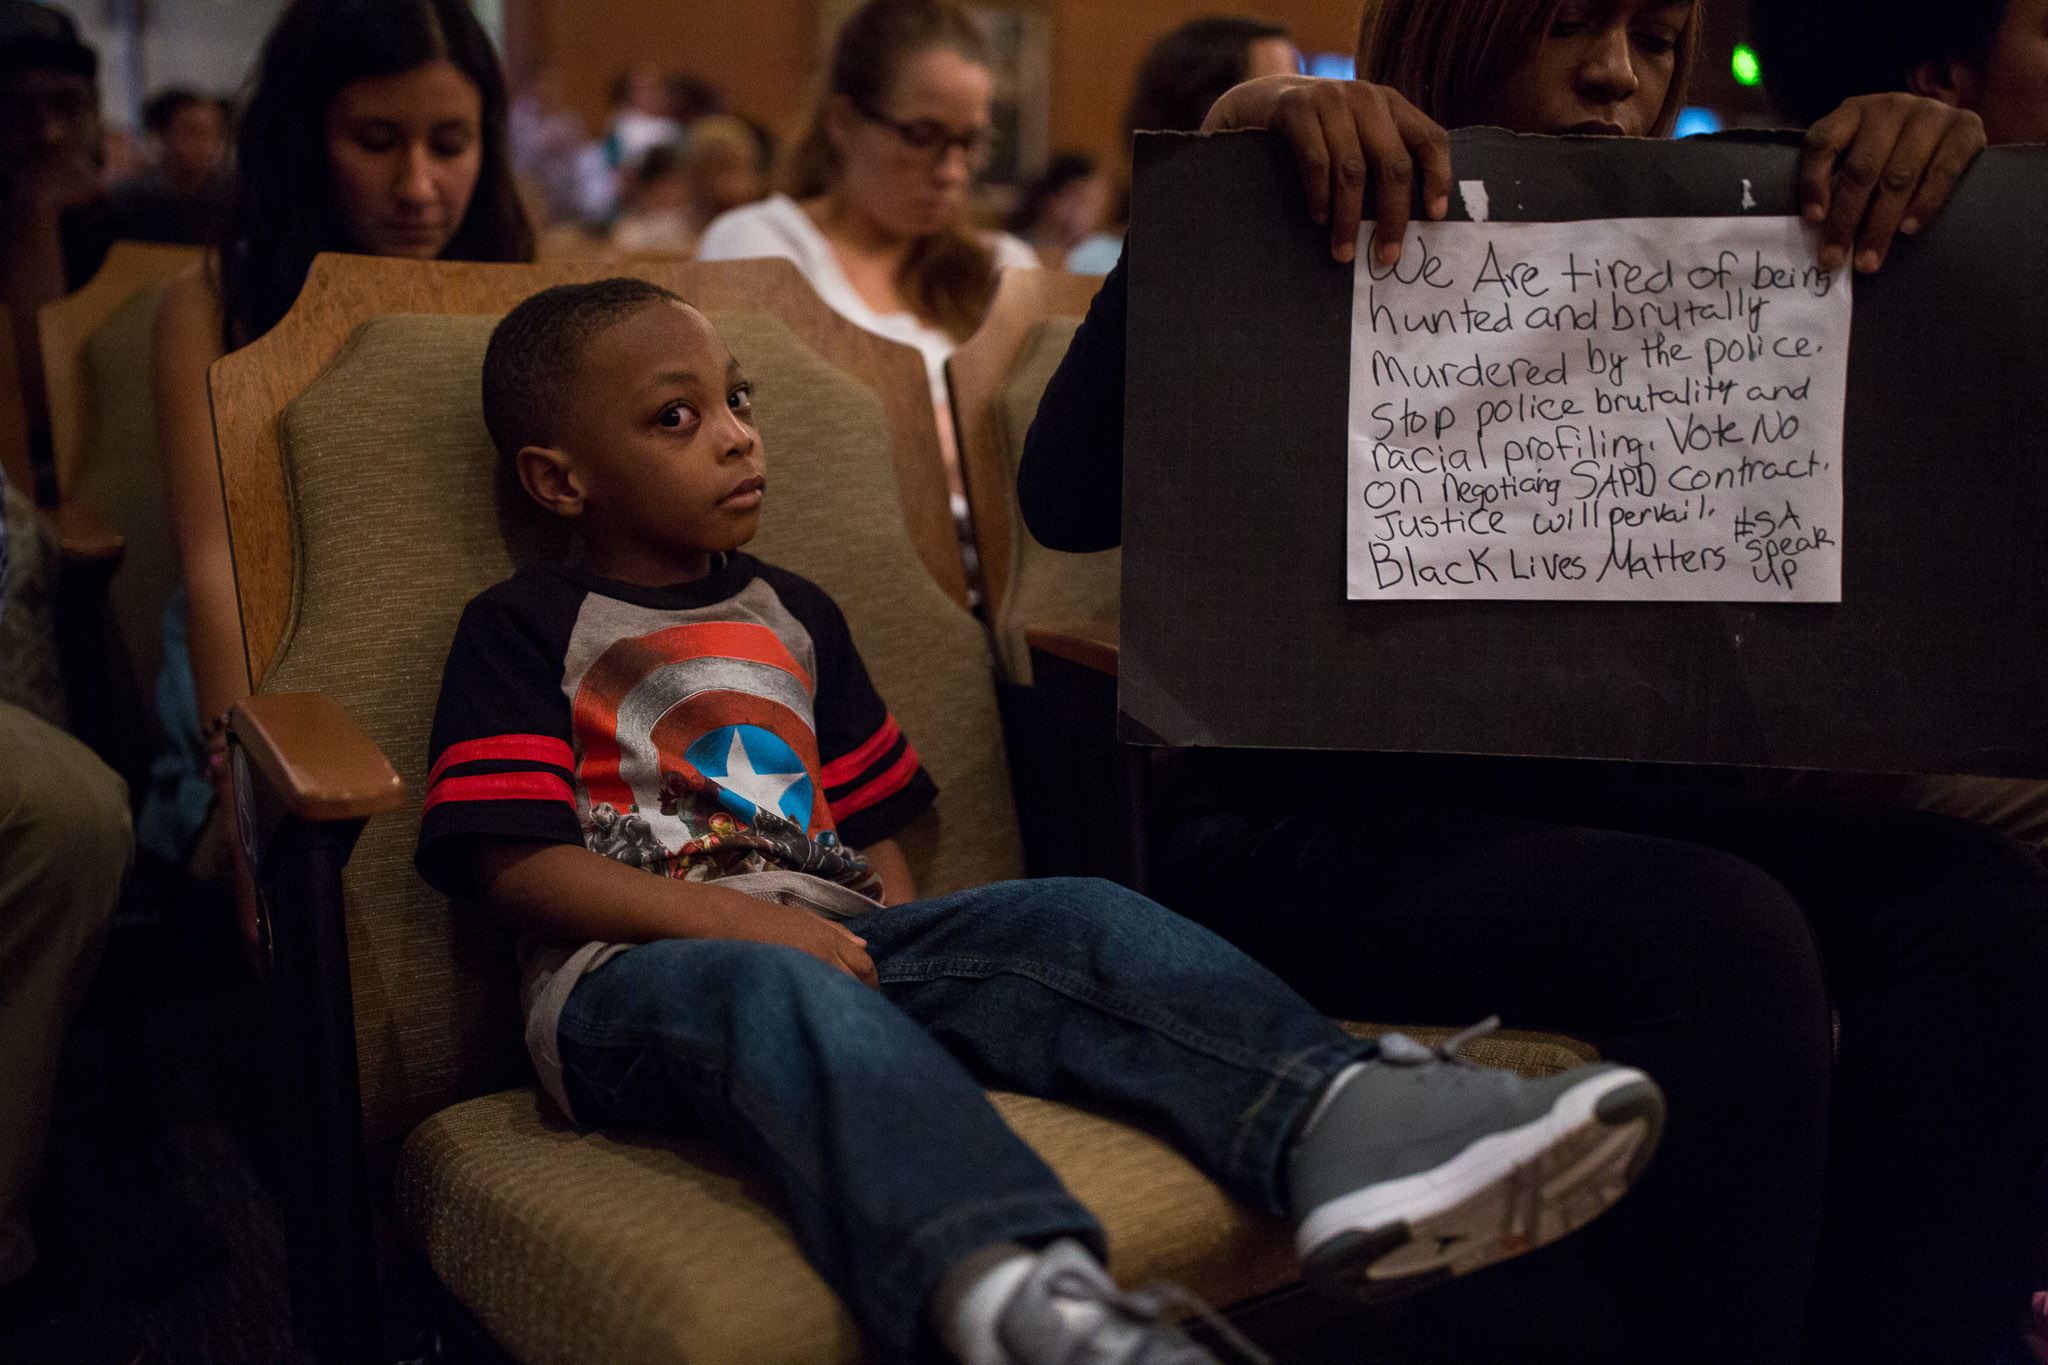 Joshua, 4, sits in a front row seat at the Citizens to be Heard meeting as his mother, Jala Minnfee holds a sign in protest of the San Antonio Police Union contract. Photo by Scott Ball.